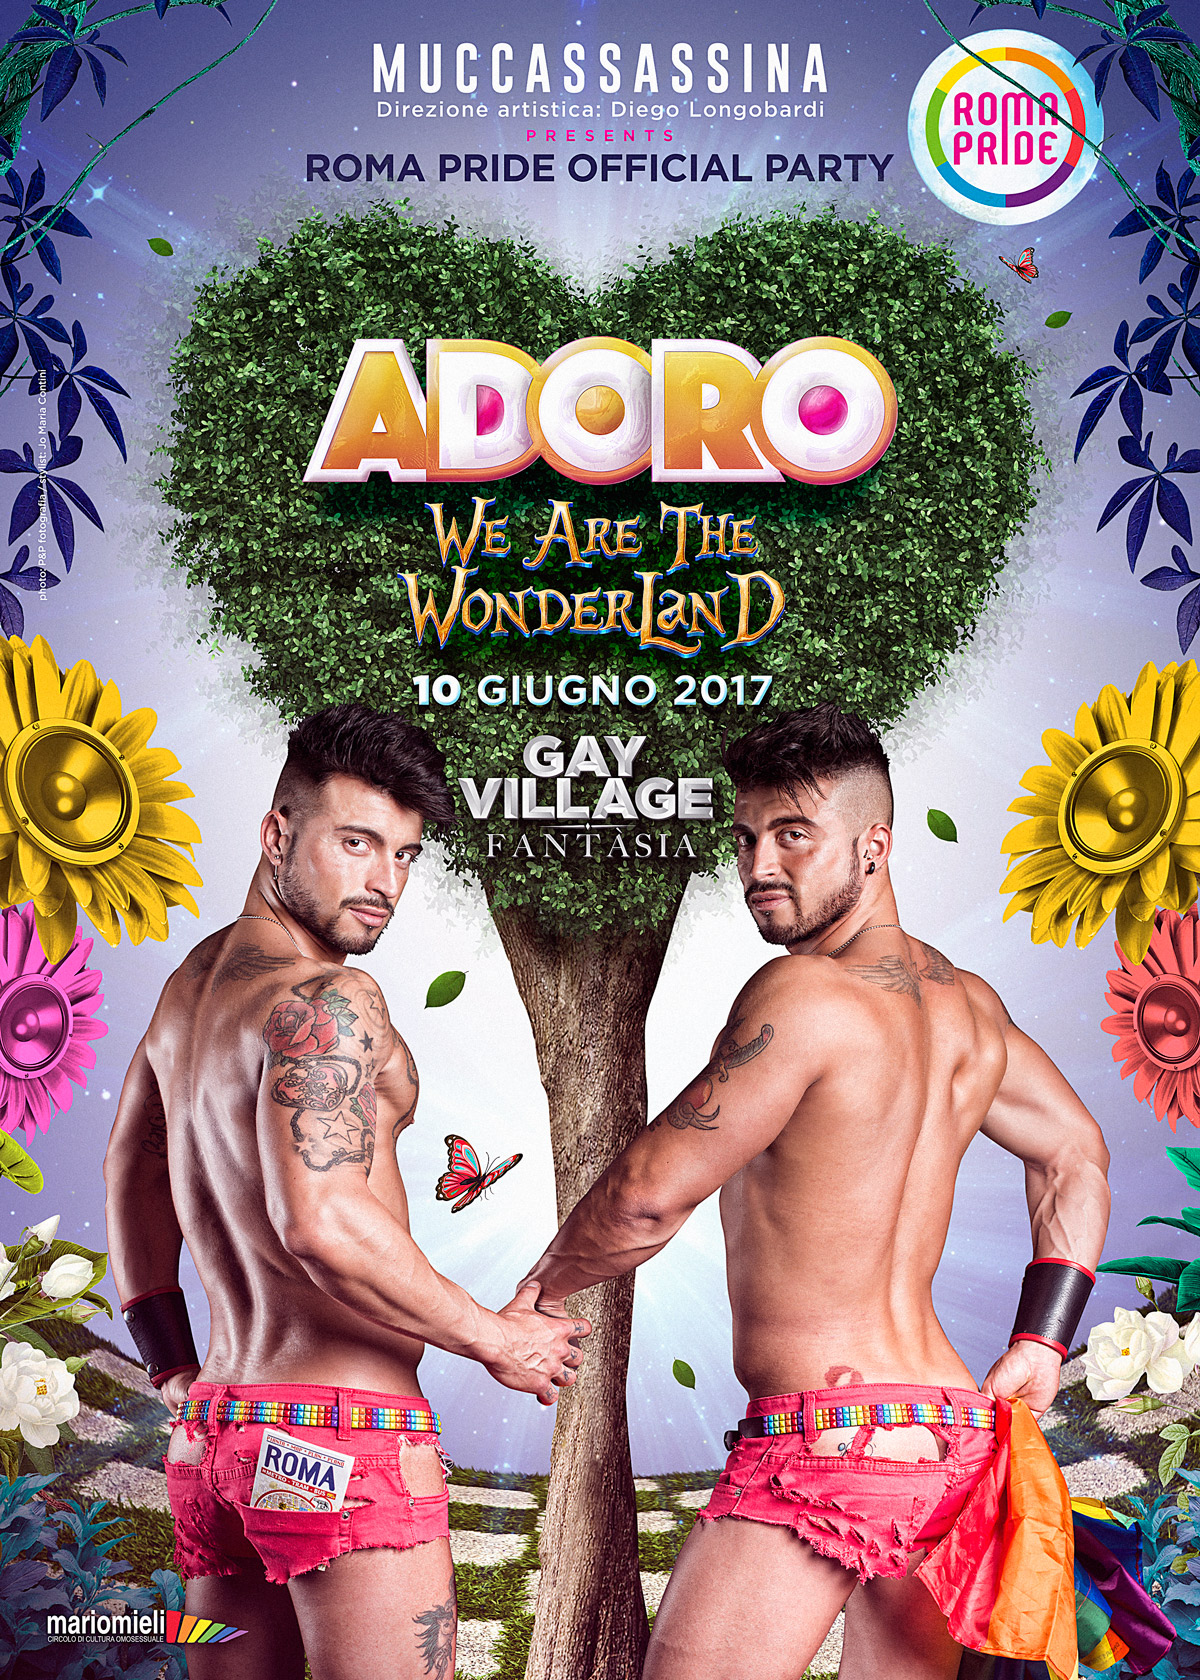 Adoro - Roma Pride Official Party